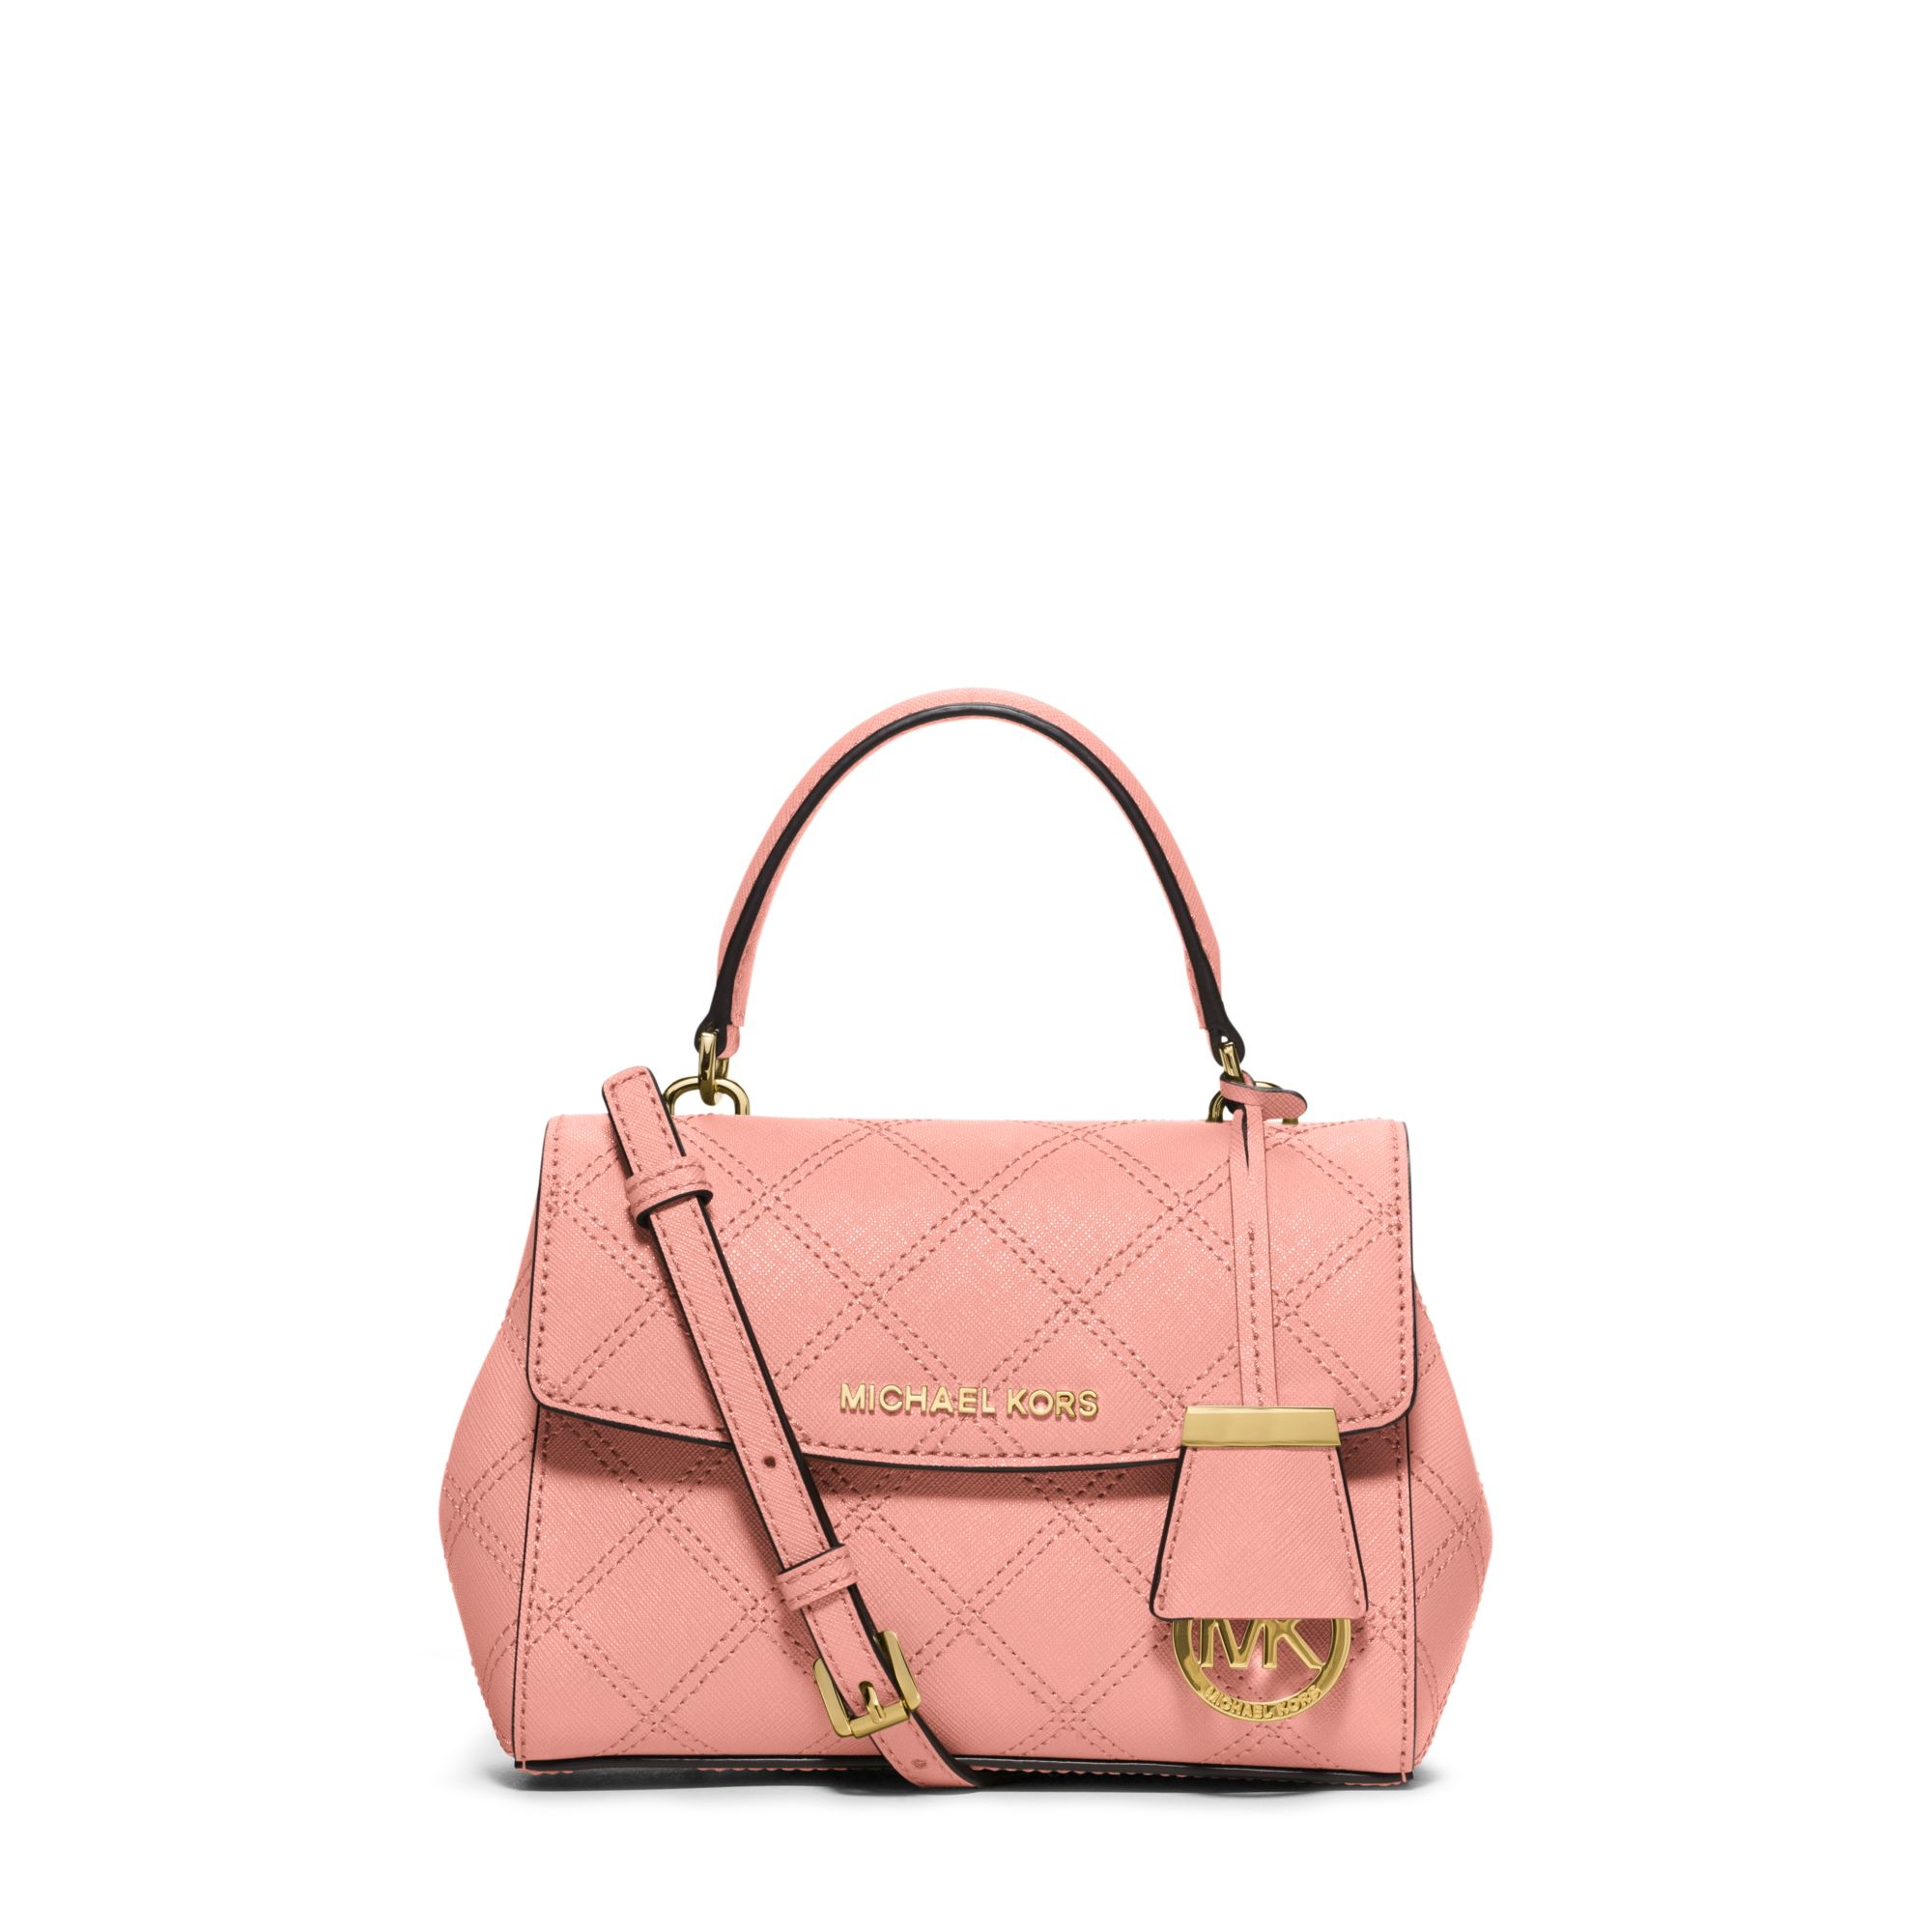 cbaa9afe11b0 Lyst - Michael Kors Ava Extra-small Saffiano Leather Crossbody in Pink